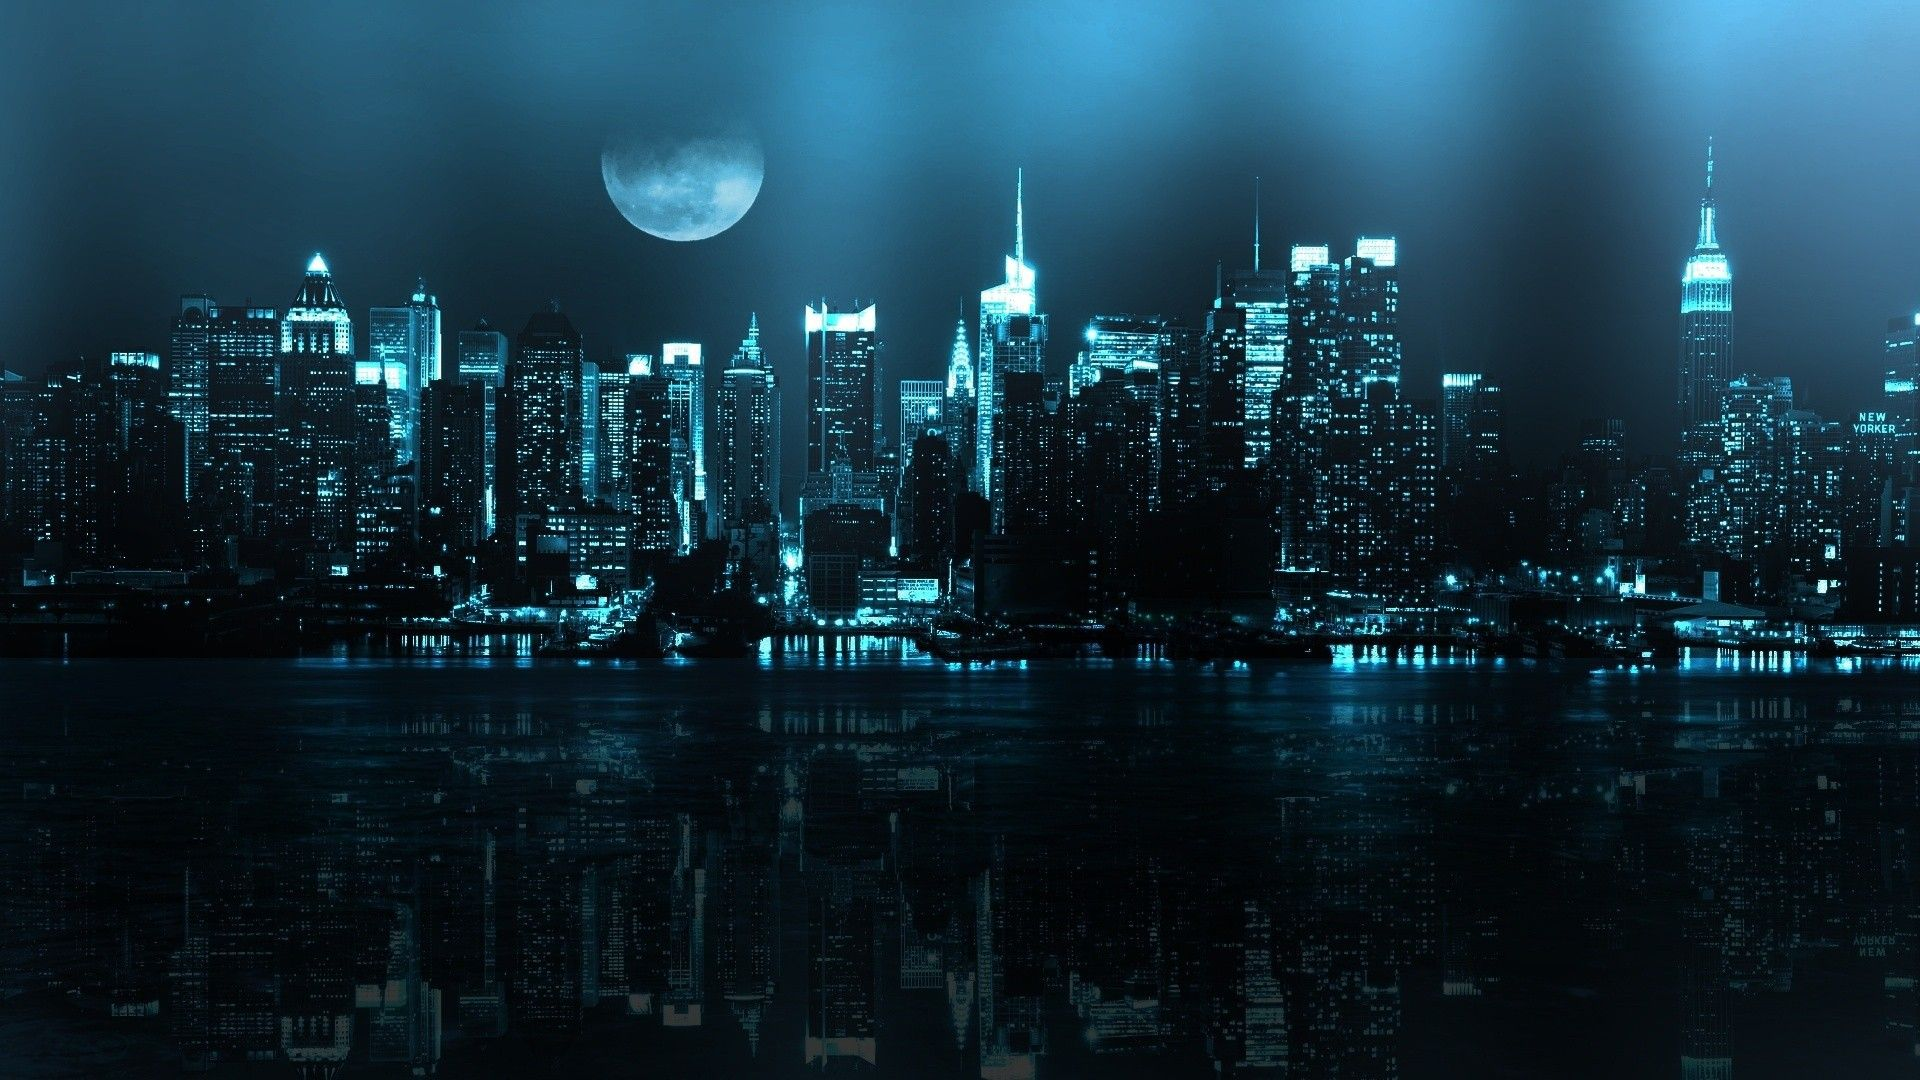 Night City Wallpaper Images Free Download Papel De Parede Pc Papeis De Parede